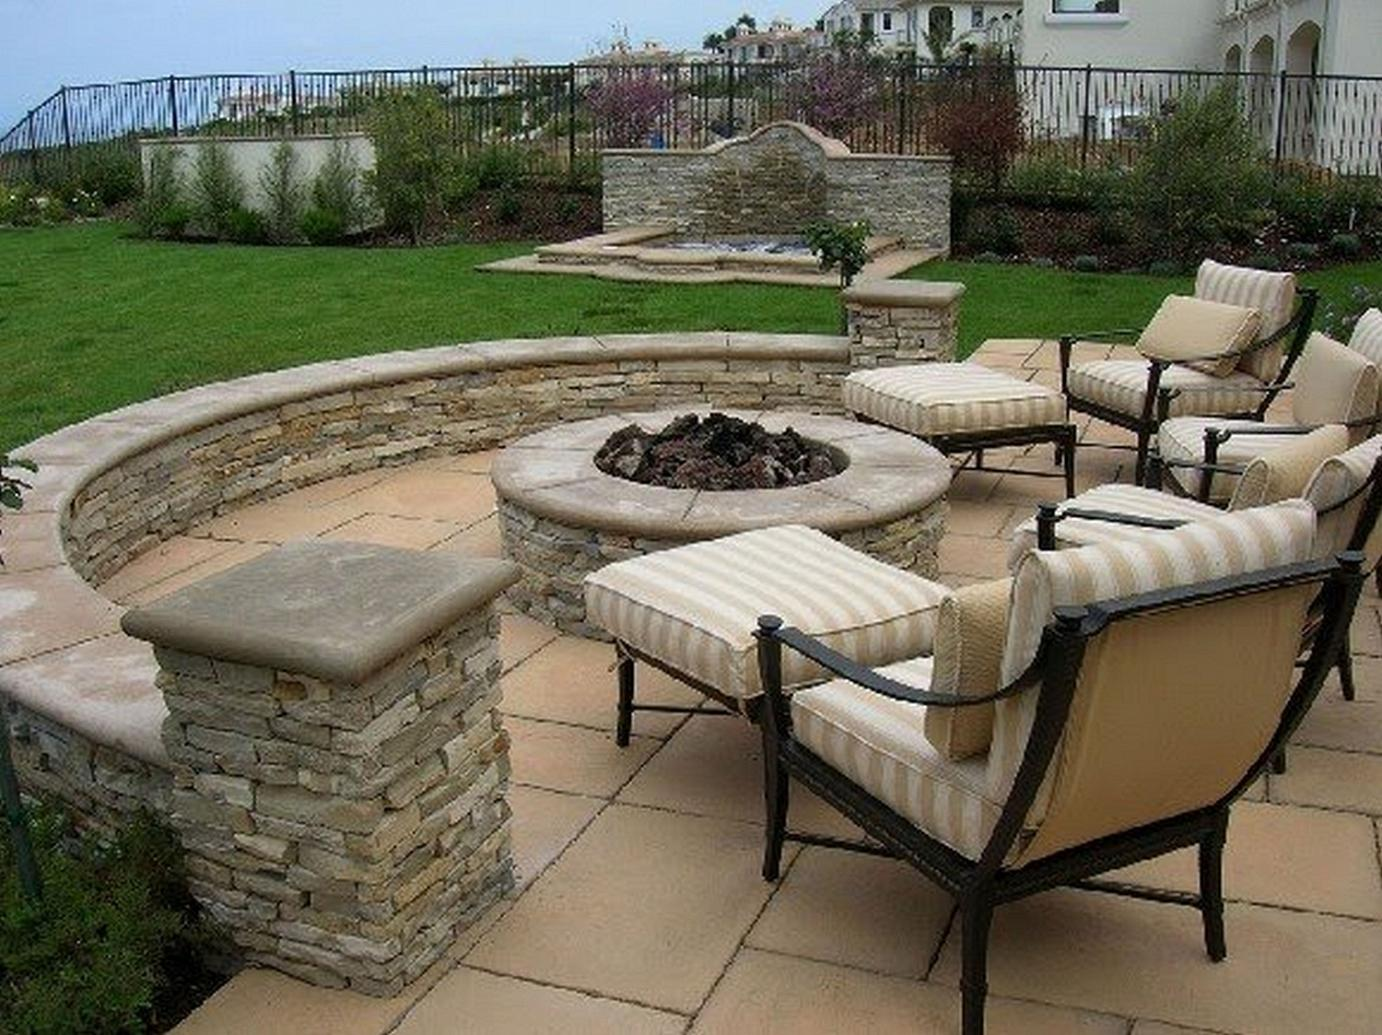 Patio Ideas Budget Outdoor Patio Ideas On A Budget Garden Design With  Creative Backyard Patio Design